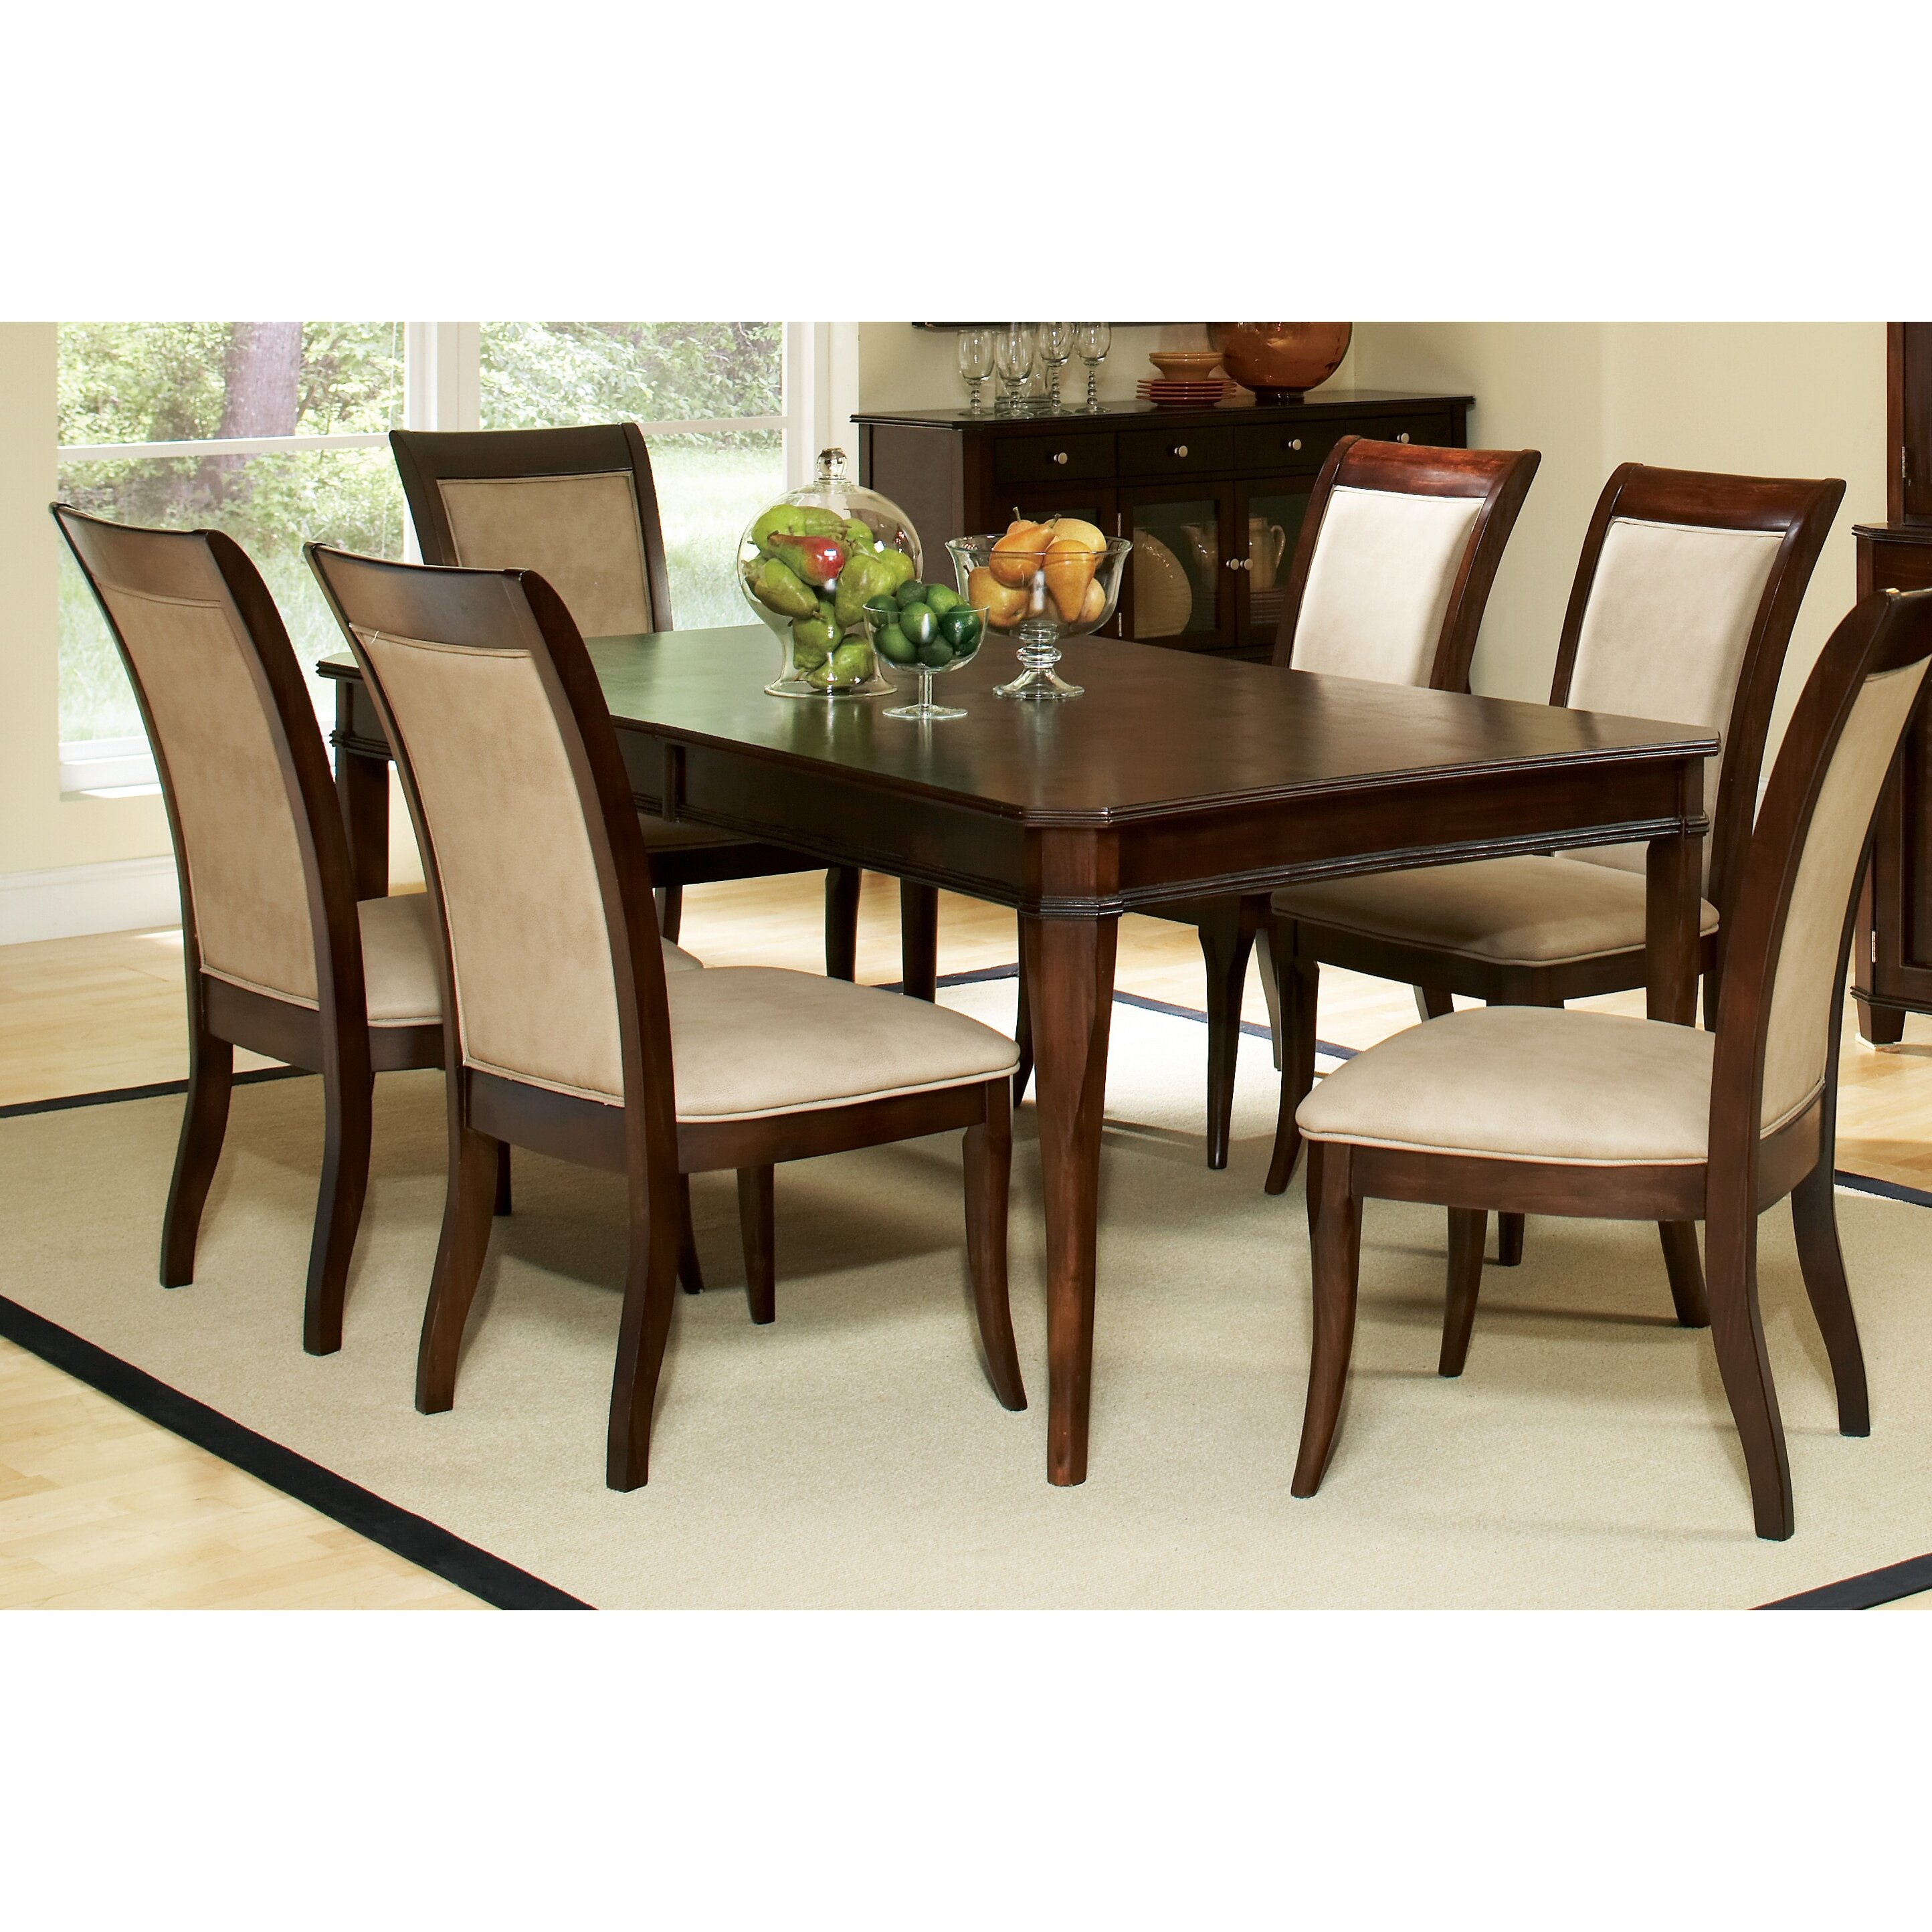 darby home co swenson extendable dining table wayfair